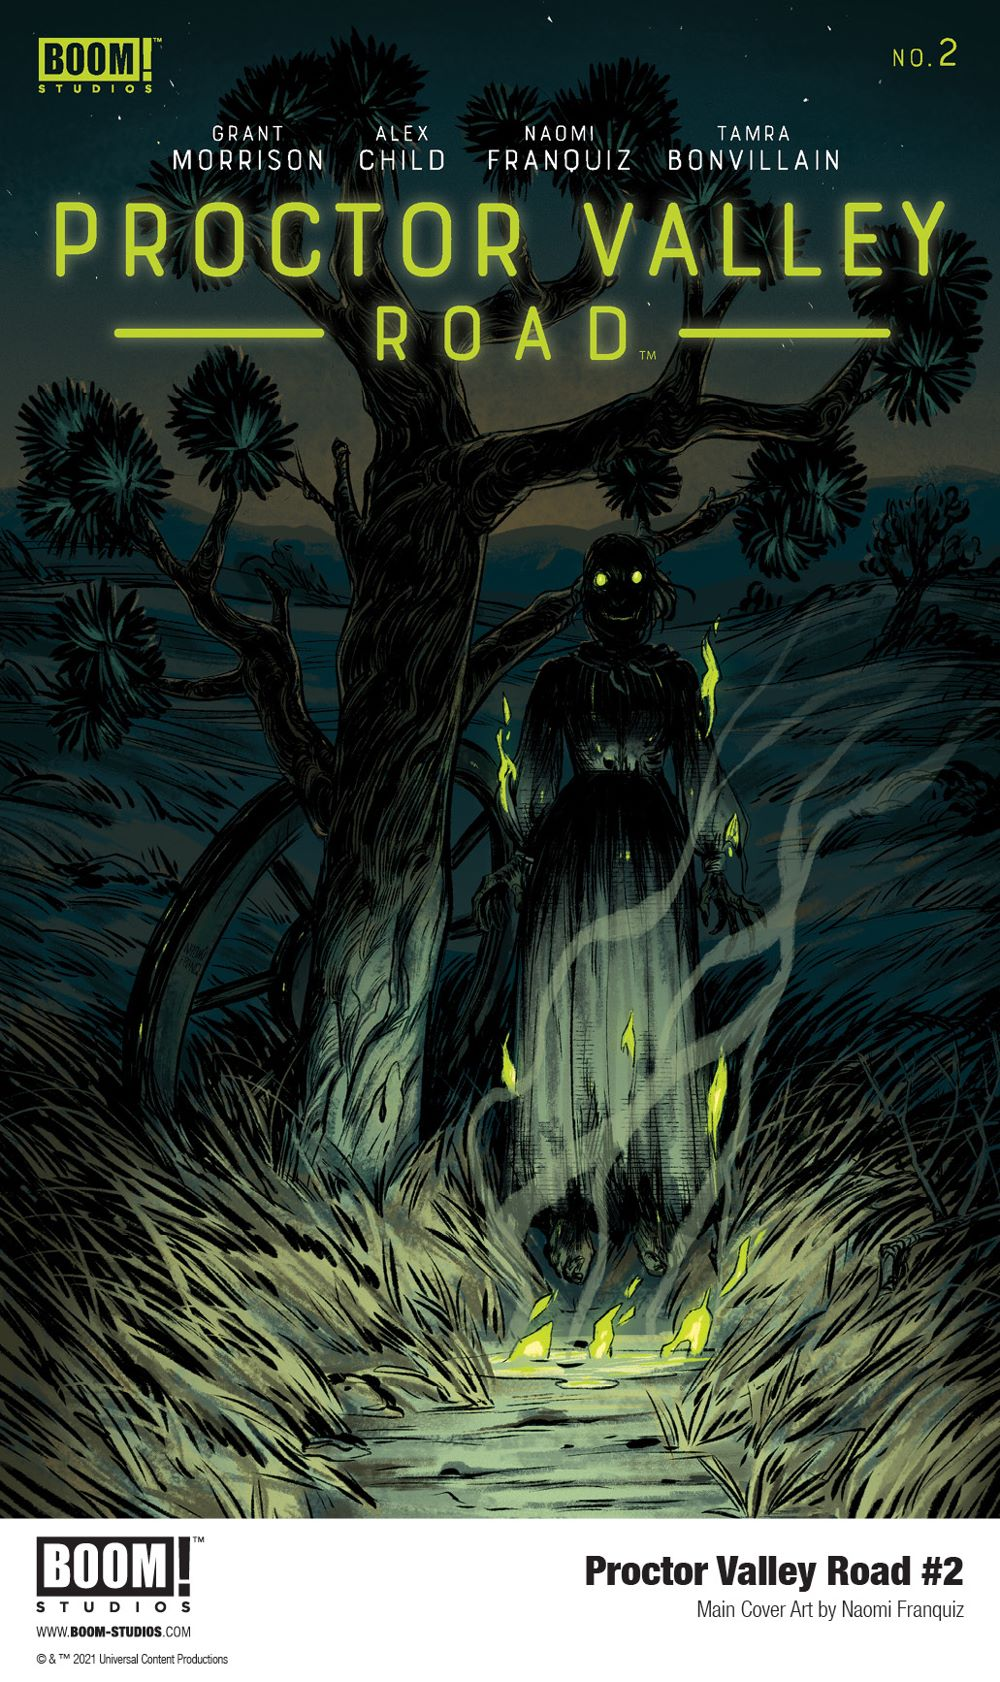 ProctorValleyRoad_002_Cover_Main_PROMO First Look at BOOM! Studios' PROCTOR VALLEY ROAD #2